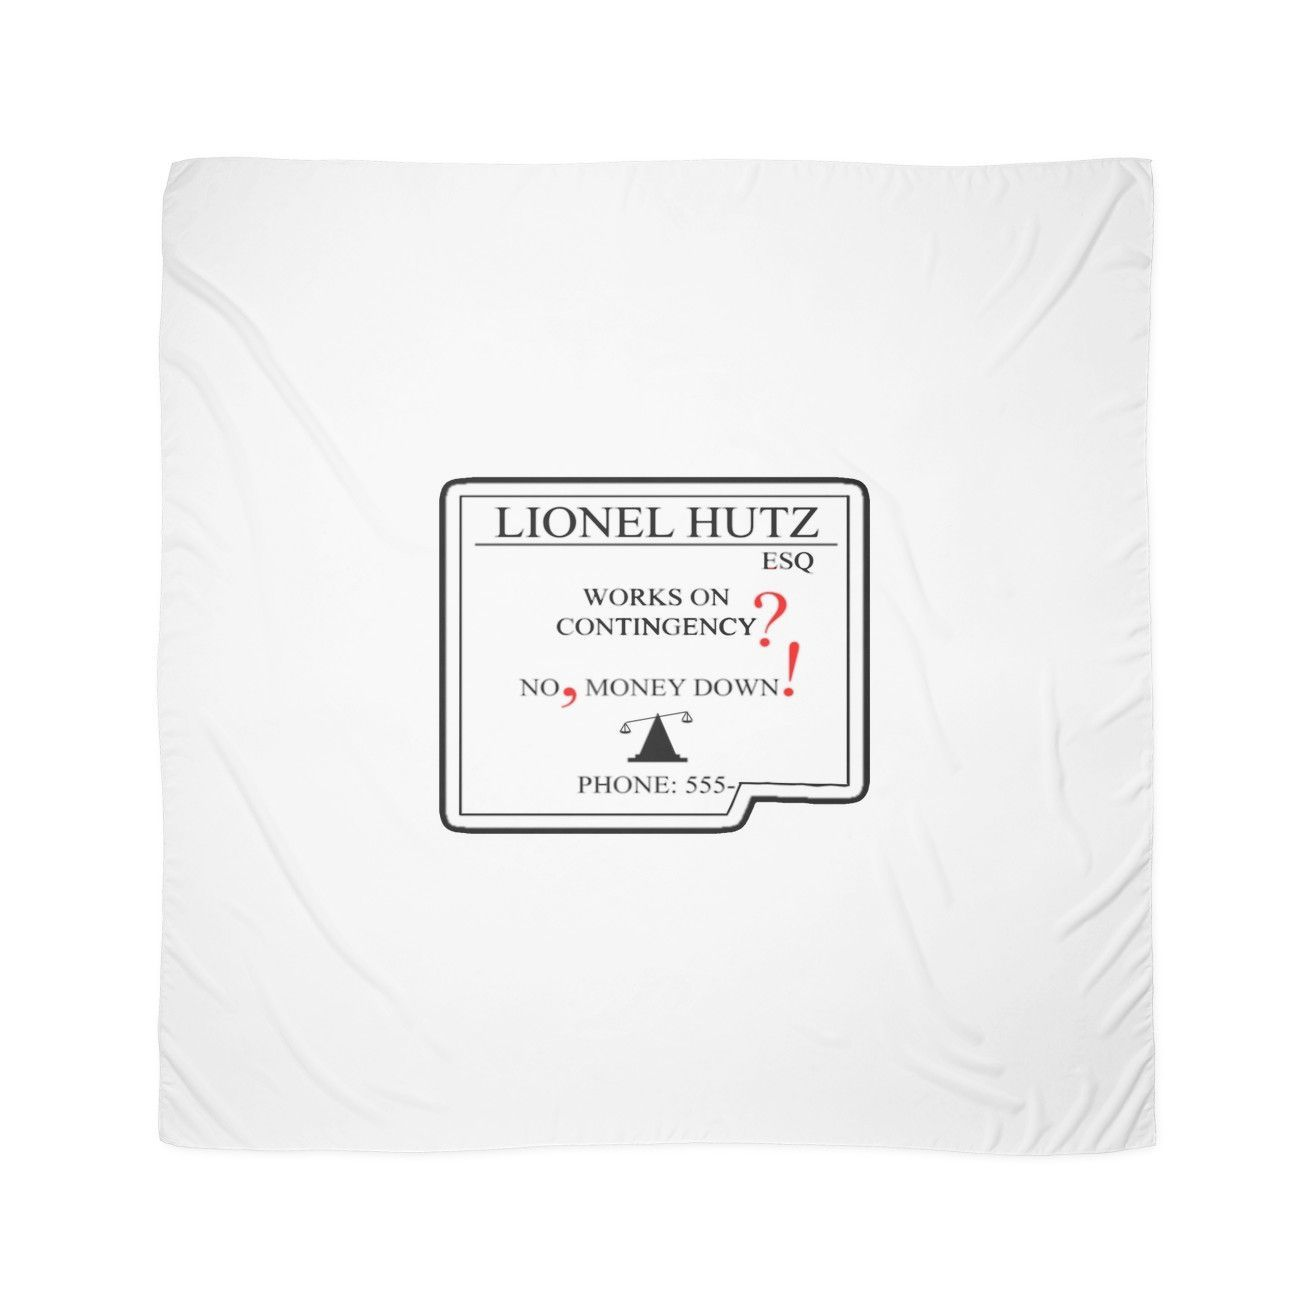 Lionel Hutz Business Card The Simpsons Scarves Products The